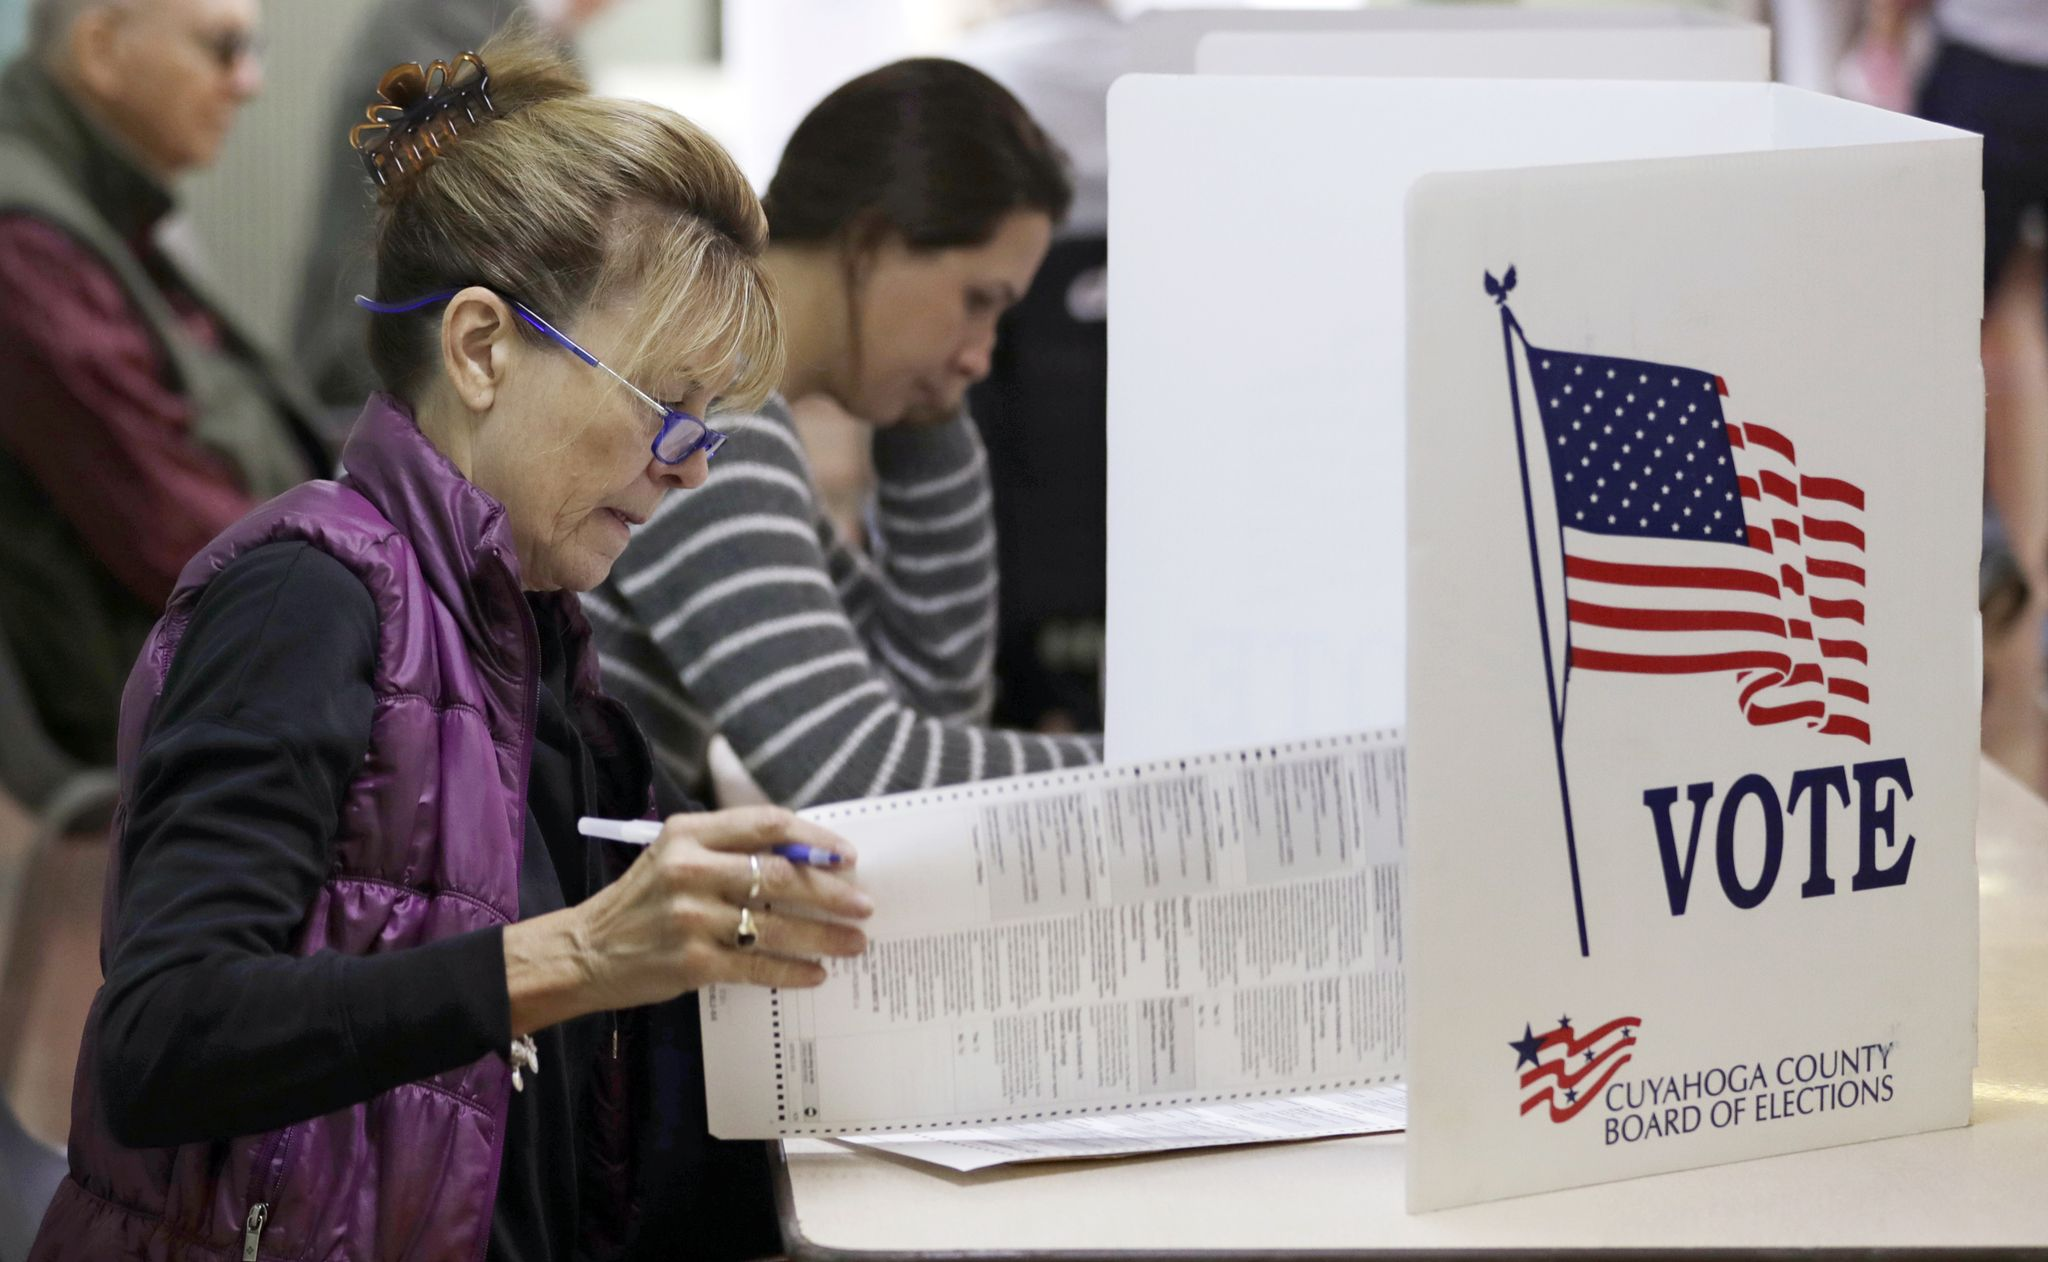 Power outages stall voting in polling stations in Columbus, Ohio suburbs